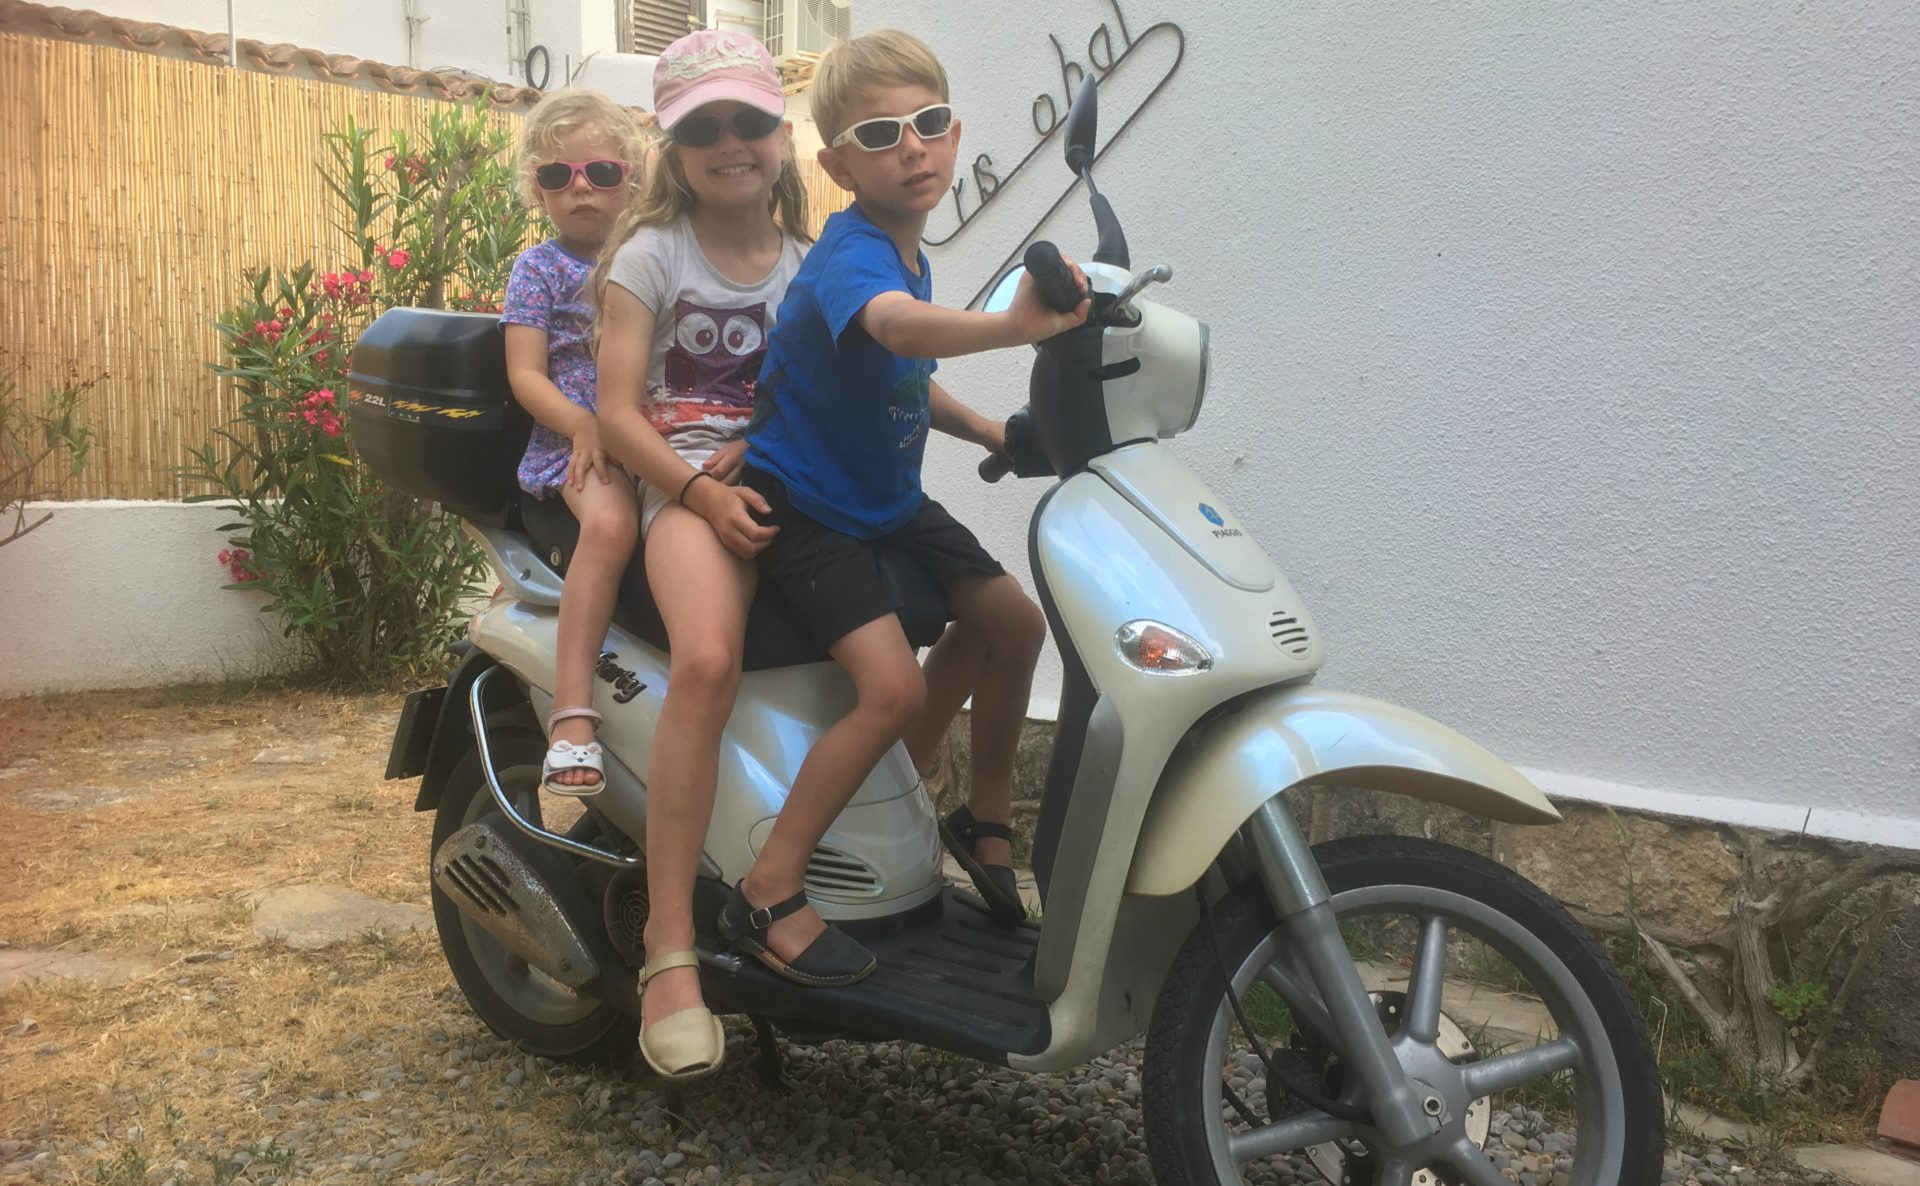 Scooter trips are a tradition for Richard's children whenever they're at their holiday trip